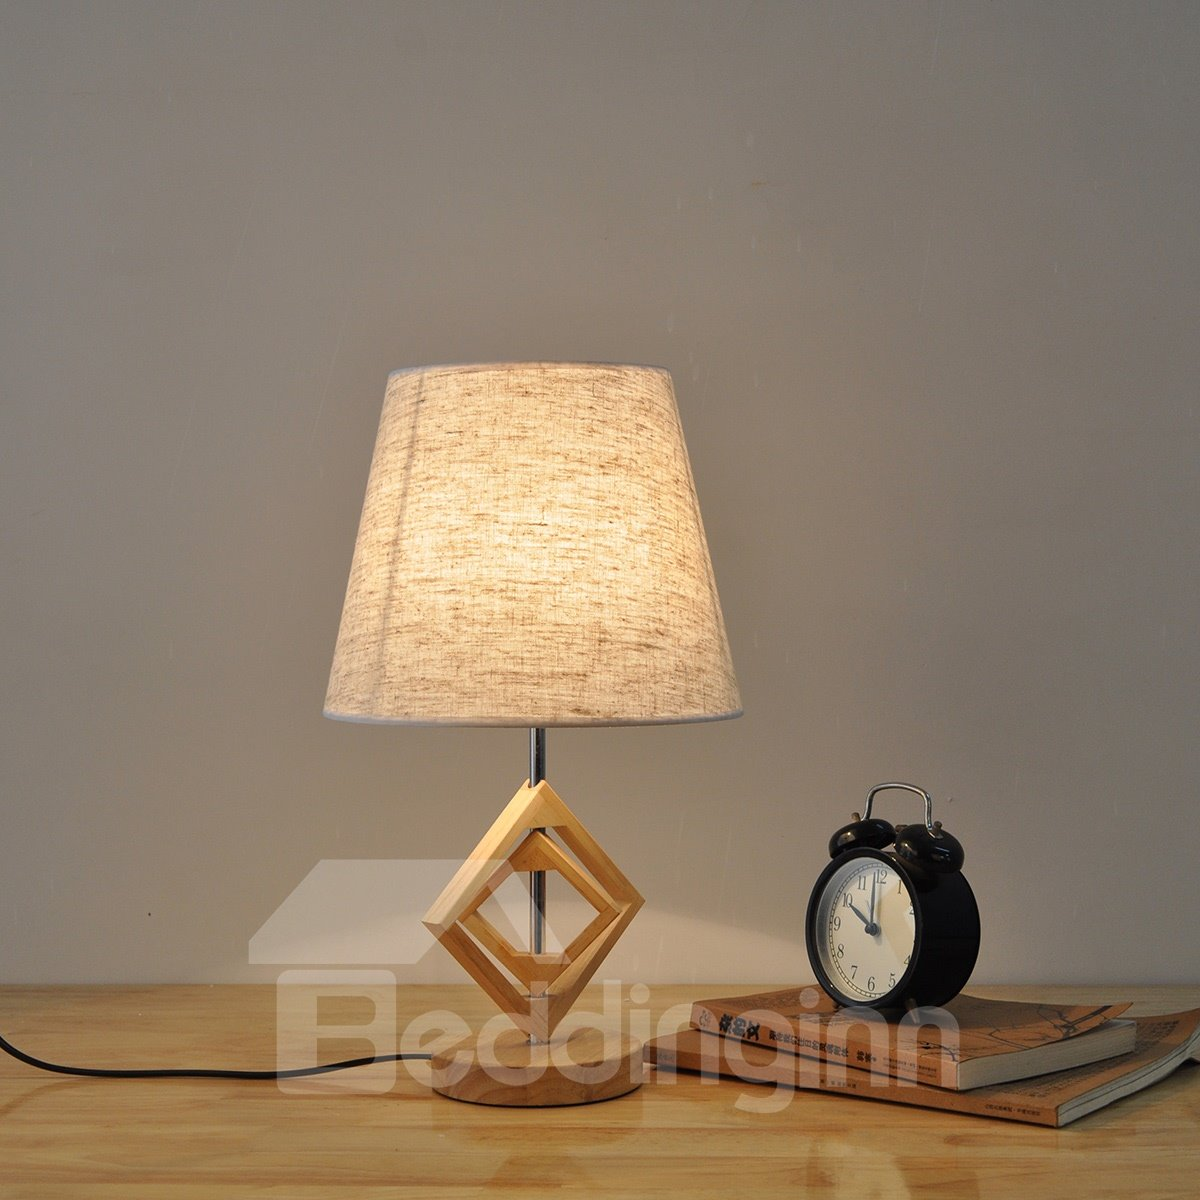 7.87×16.54in White Cloth Shade and Wooden Base with Prismatic 1 Bulb Table Lamp